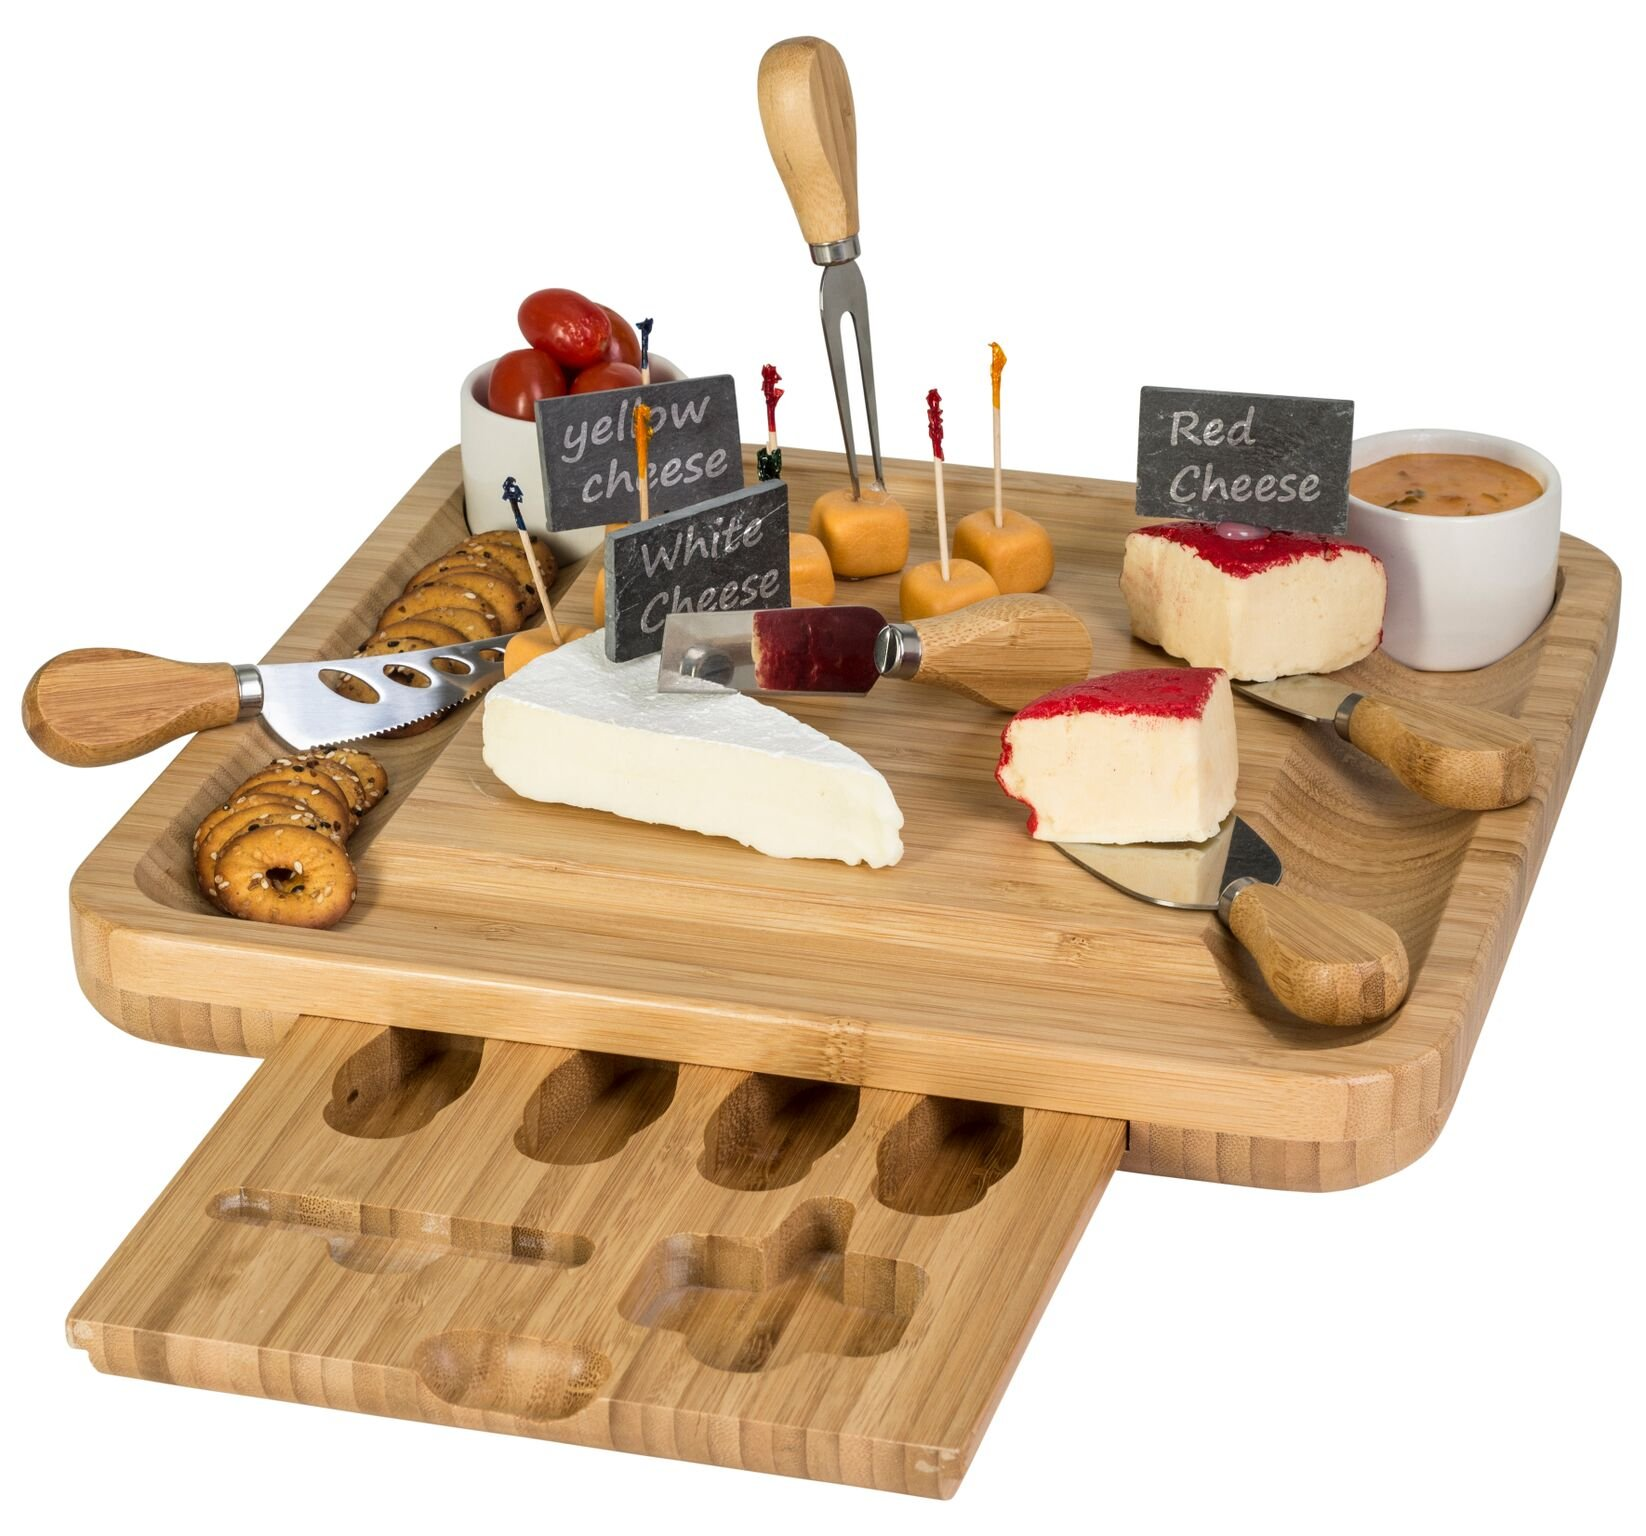 Cheese Knife And Marker Set, 5 Cutlery Knives Stainless Steel Bamboo Handles, 4 Cheese Board Labels Made Of Natural Black Slate Includes 2-Chalk Markers.Gift For All Occasions Upgrade By House Ur Home by House Ur Home (Image #5)